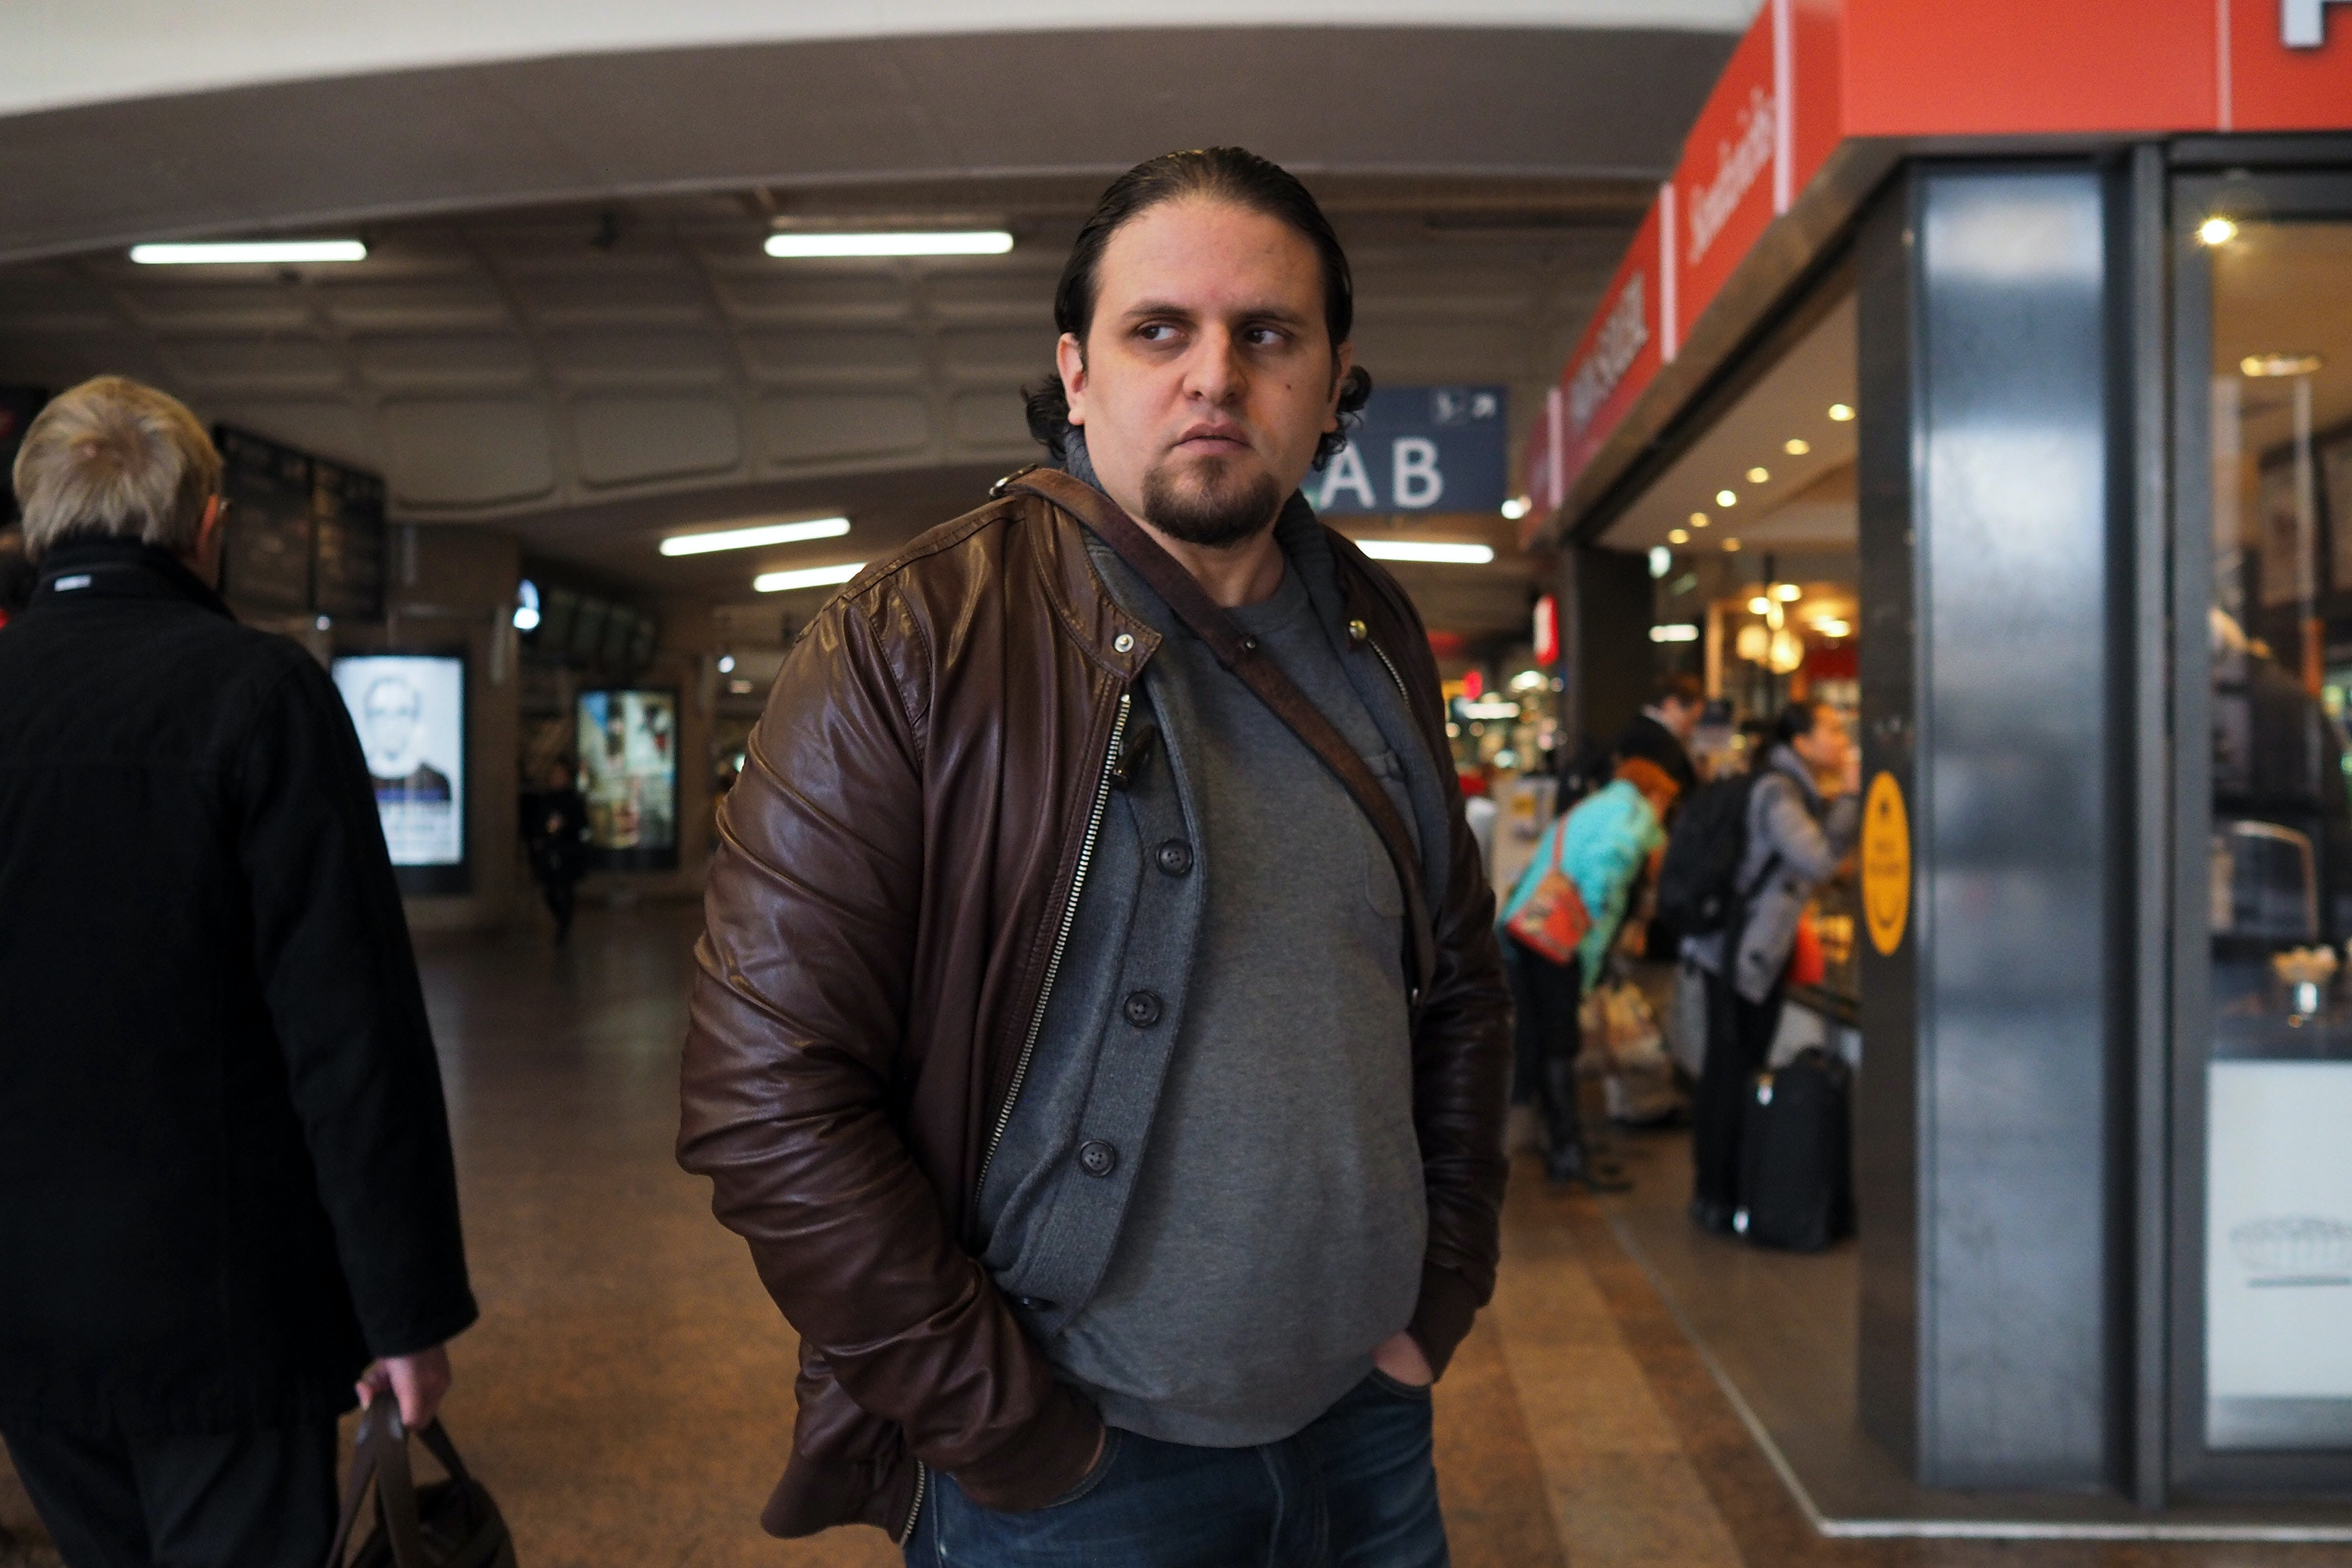 Former Guantanamo detainee Mourad Benchellali stands in the Gare de Lyon  in  Lyon, France, March 7, 2017. Benchellali attended an Al-Qaeda training camp in Afghanistan in 2001, but he maintains he was tricked into joining the camp by his older brother, who told him he would be going on vacation.